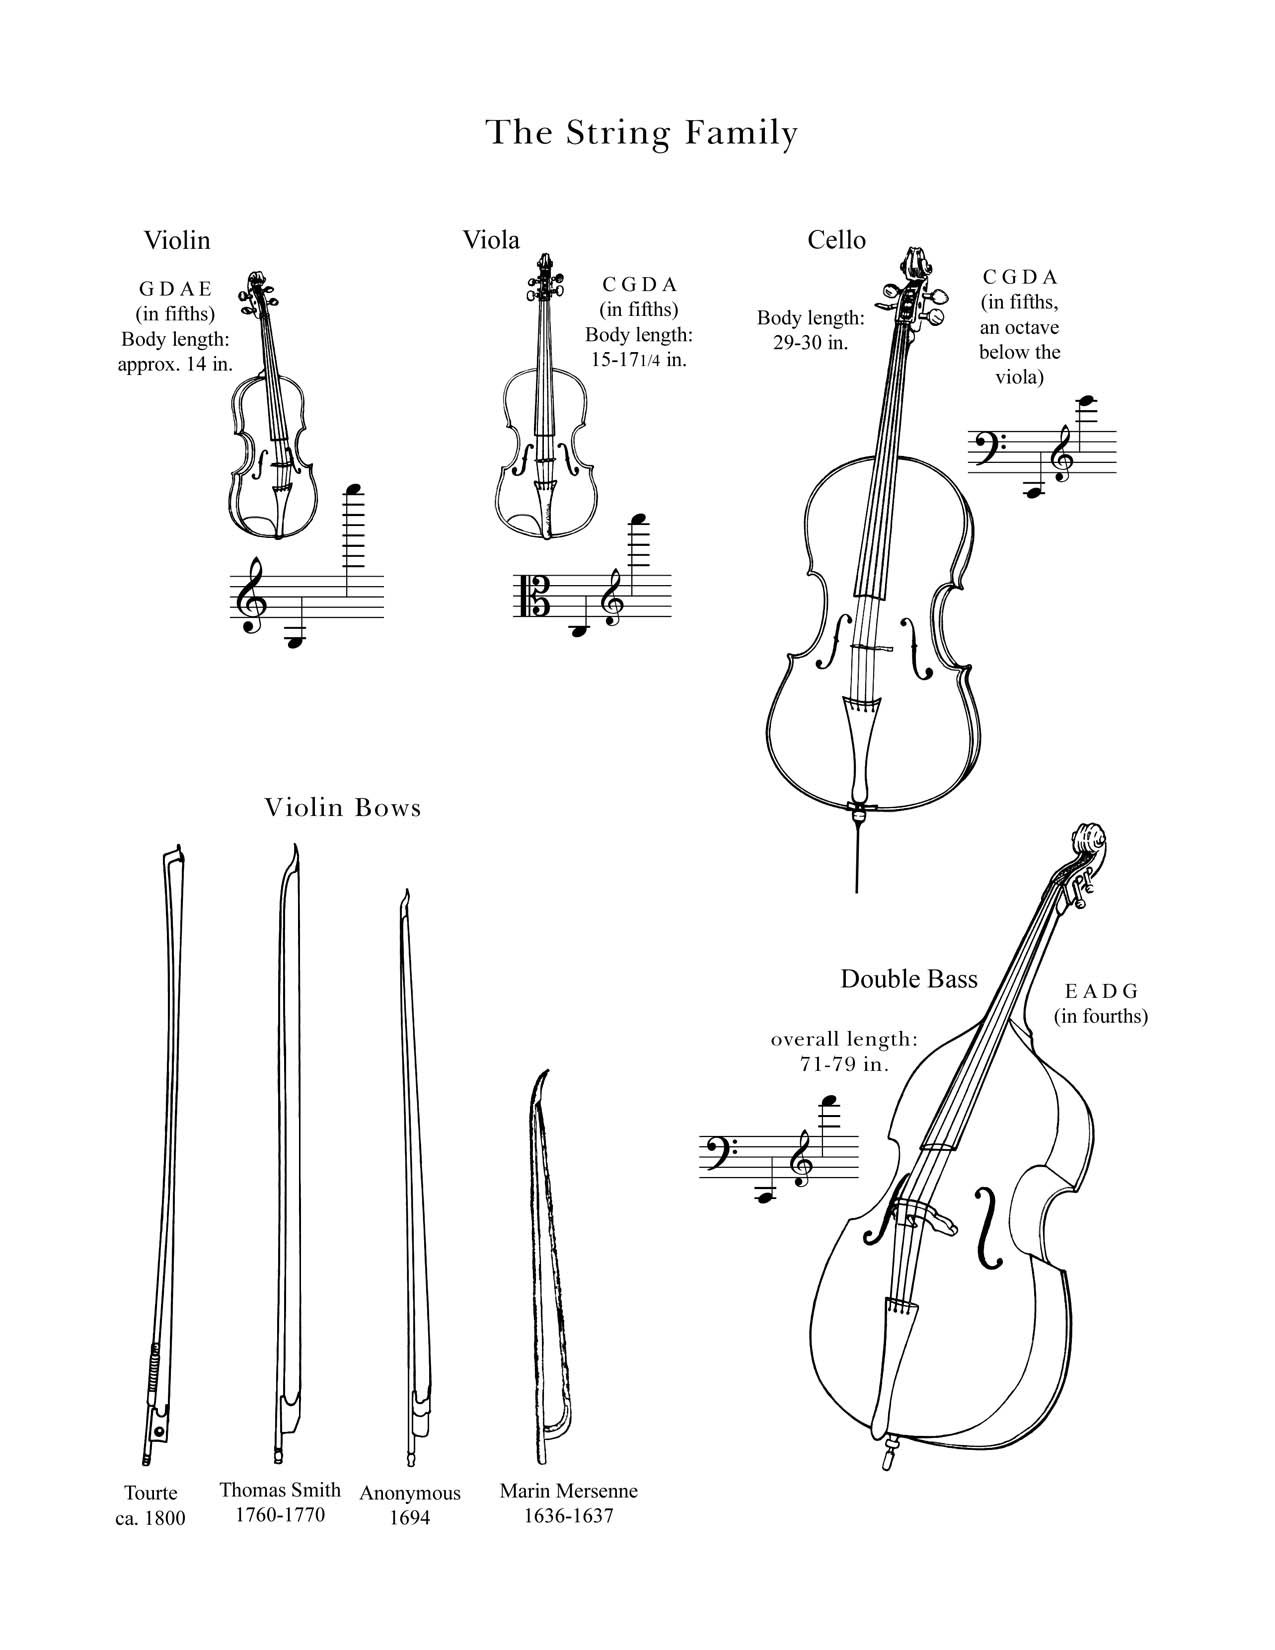 The String Family Drawings Of Instruments In The String Family From The Lancaster Symphony